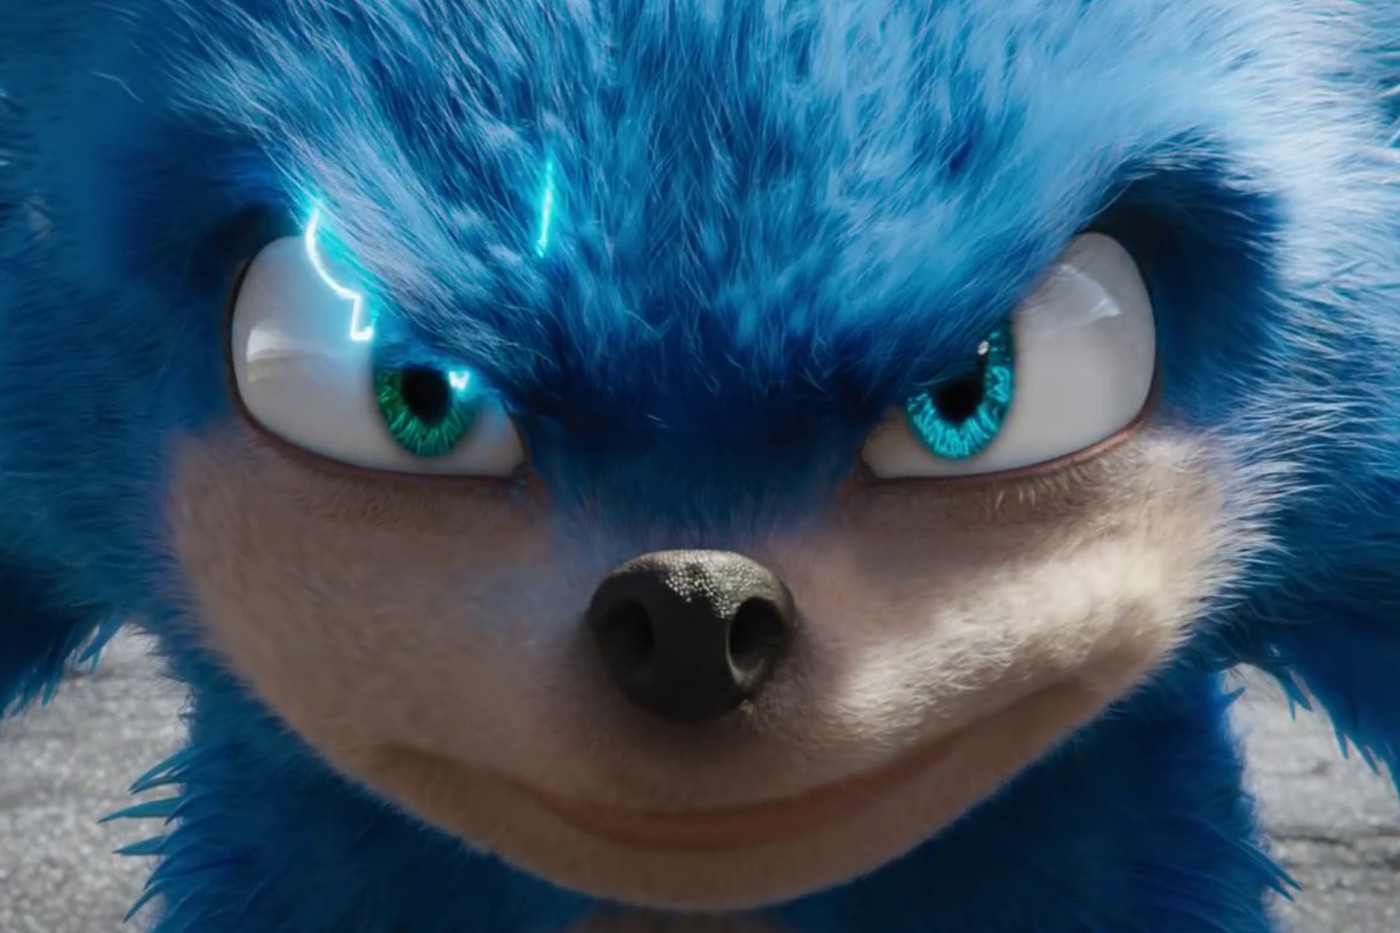 Sonic The Hedgehog Movie Delayed To February 2020 To Fix Sonic Polygon